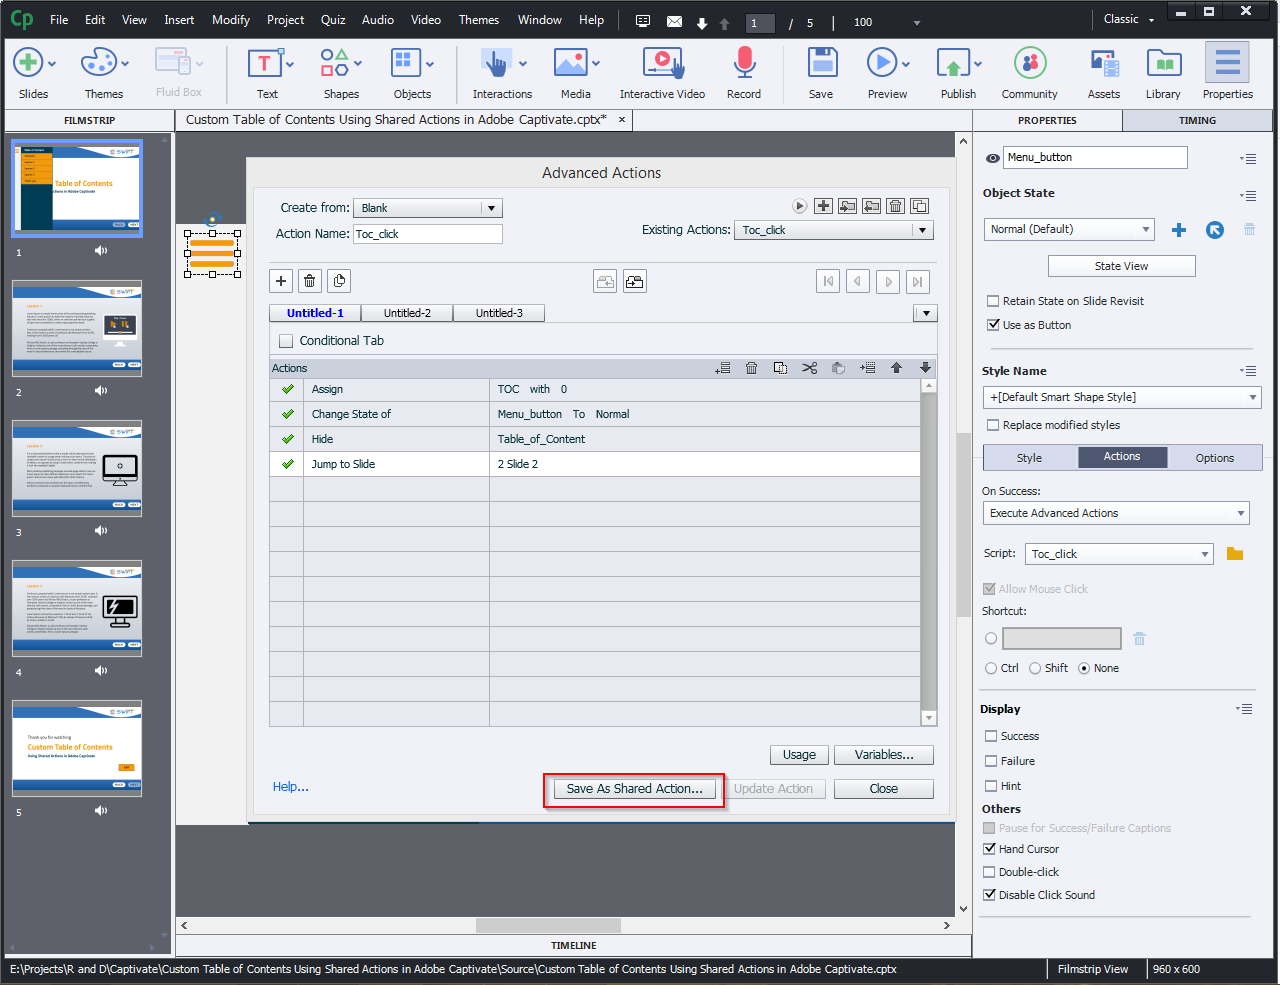 Contents Using Shared Actions in Adobe Captivate 2019 6